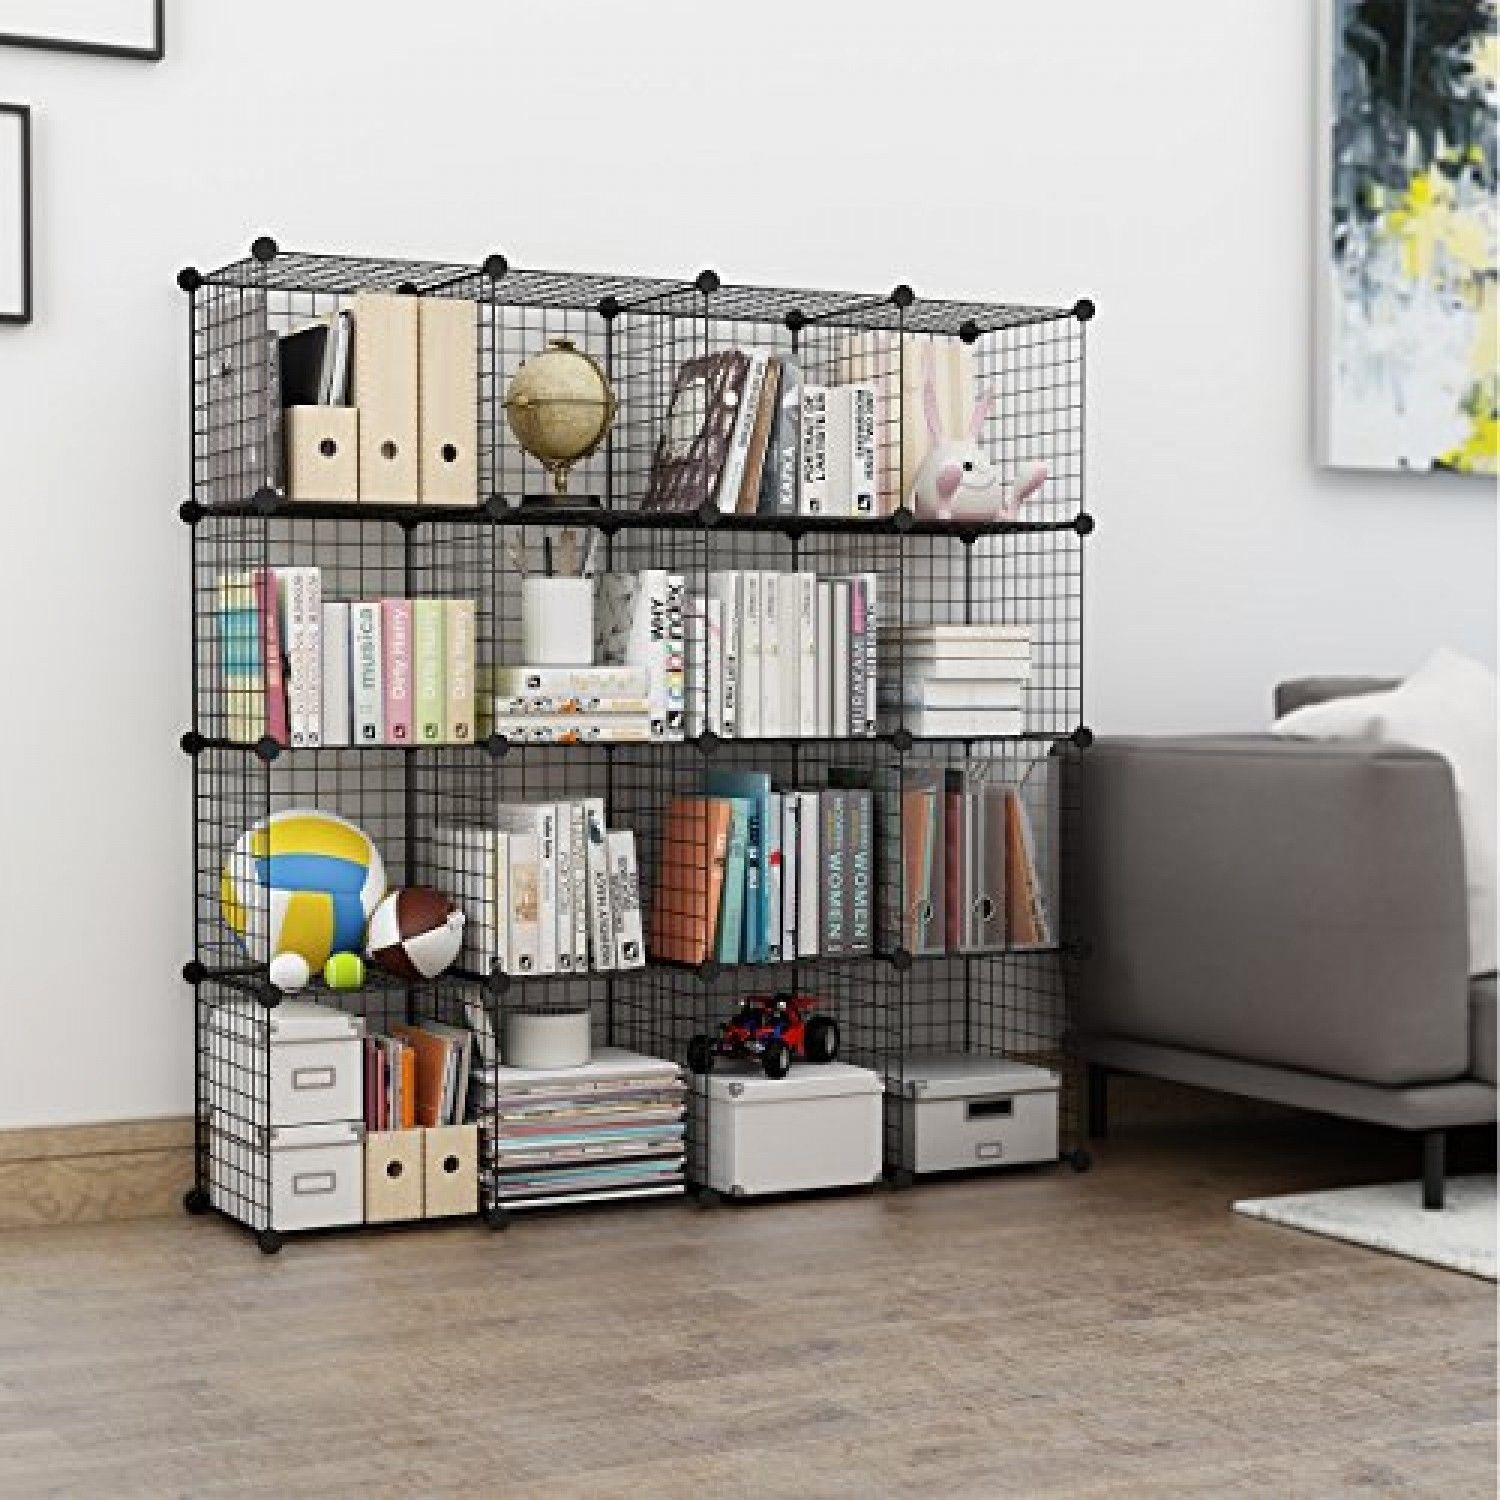 6 Cube Wire Grid Bookcase Modular Storage Shelving Rack Toys Organizer